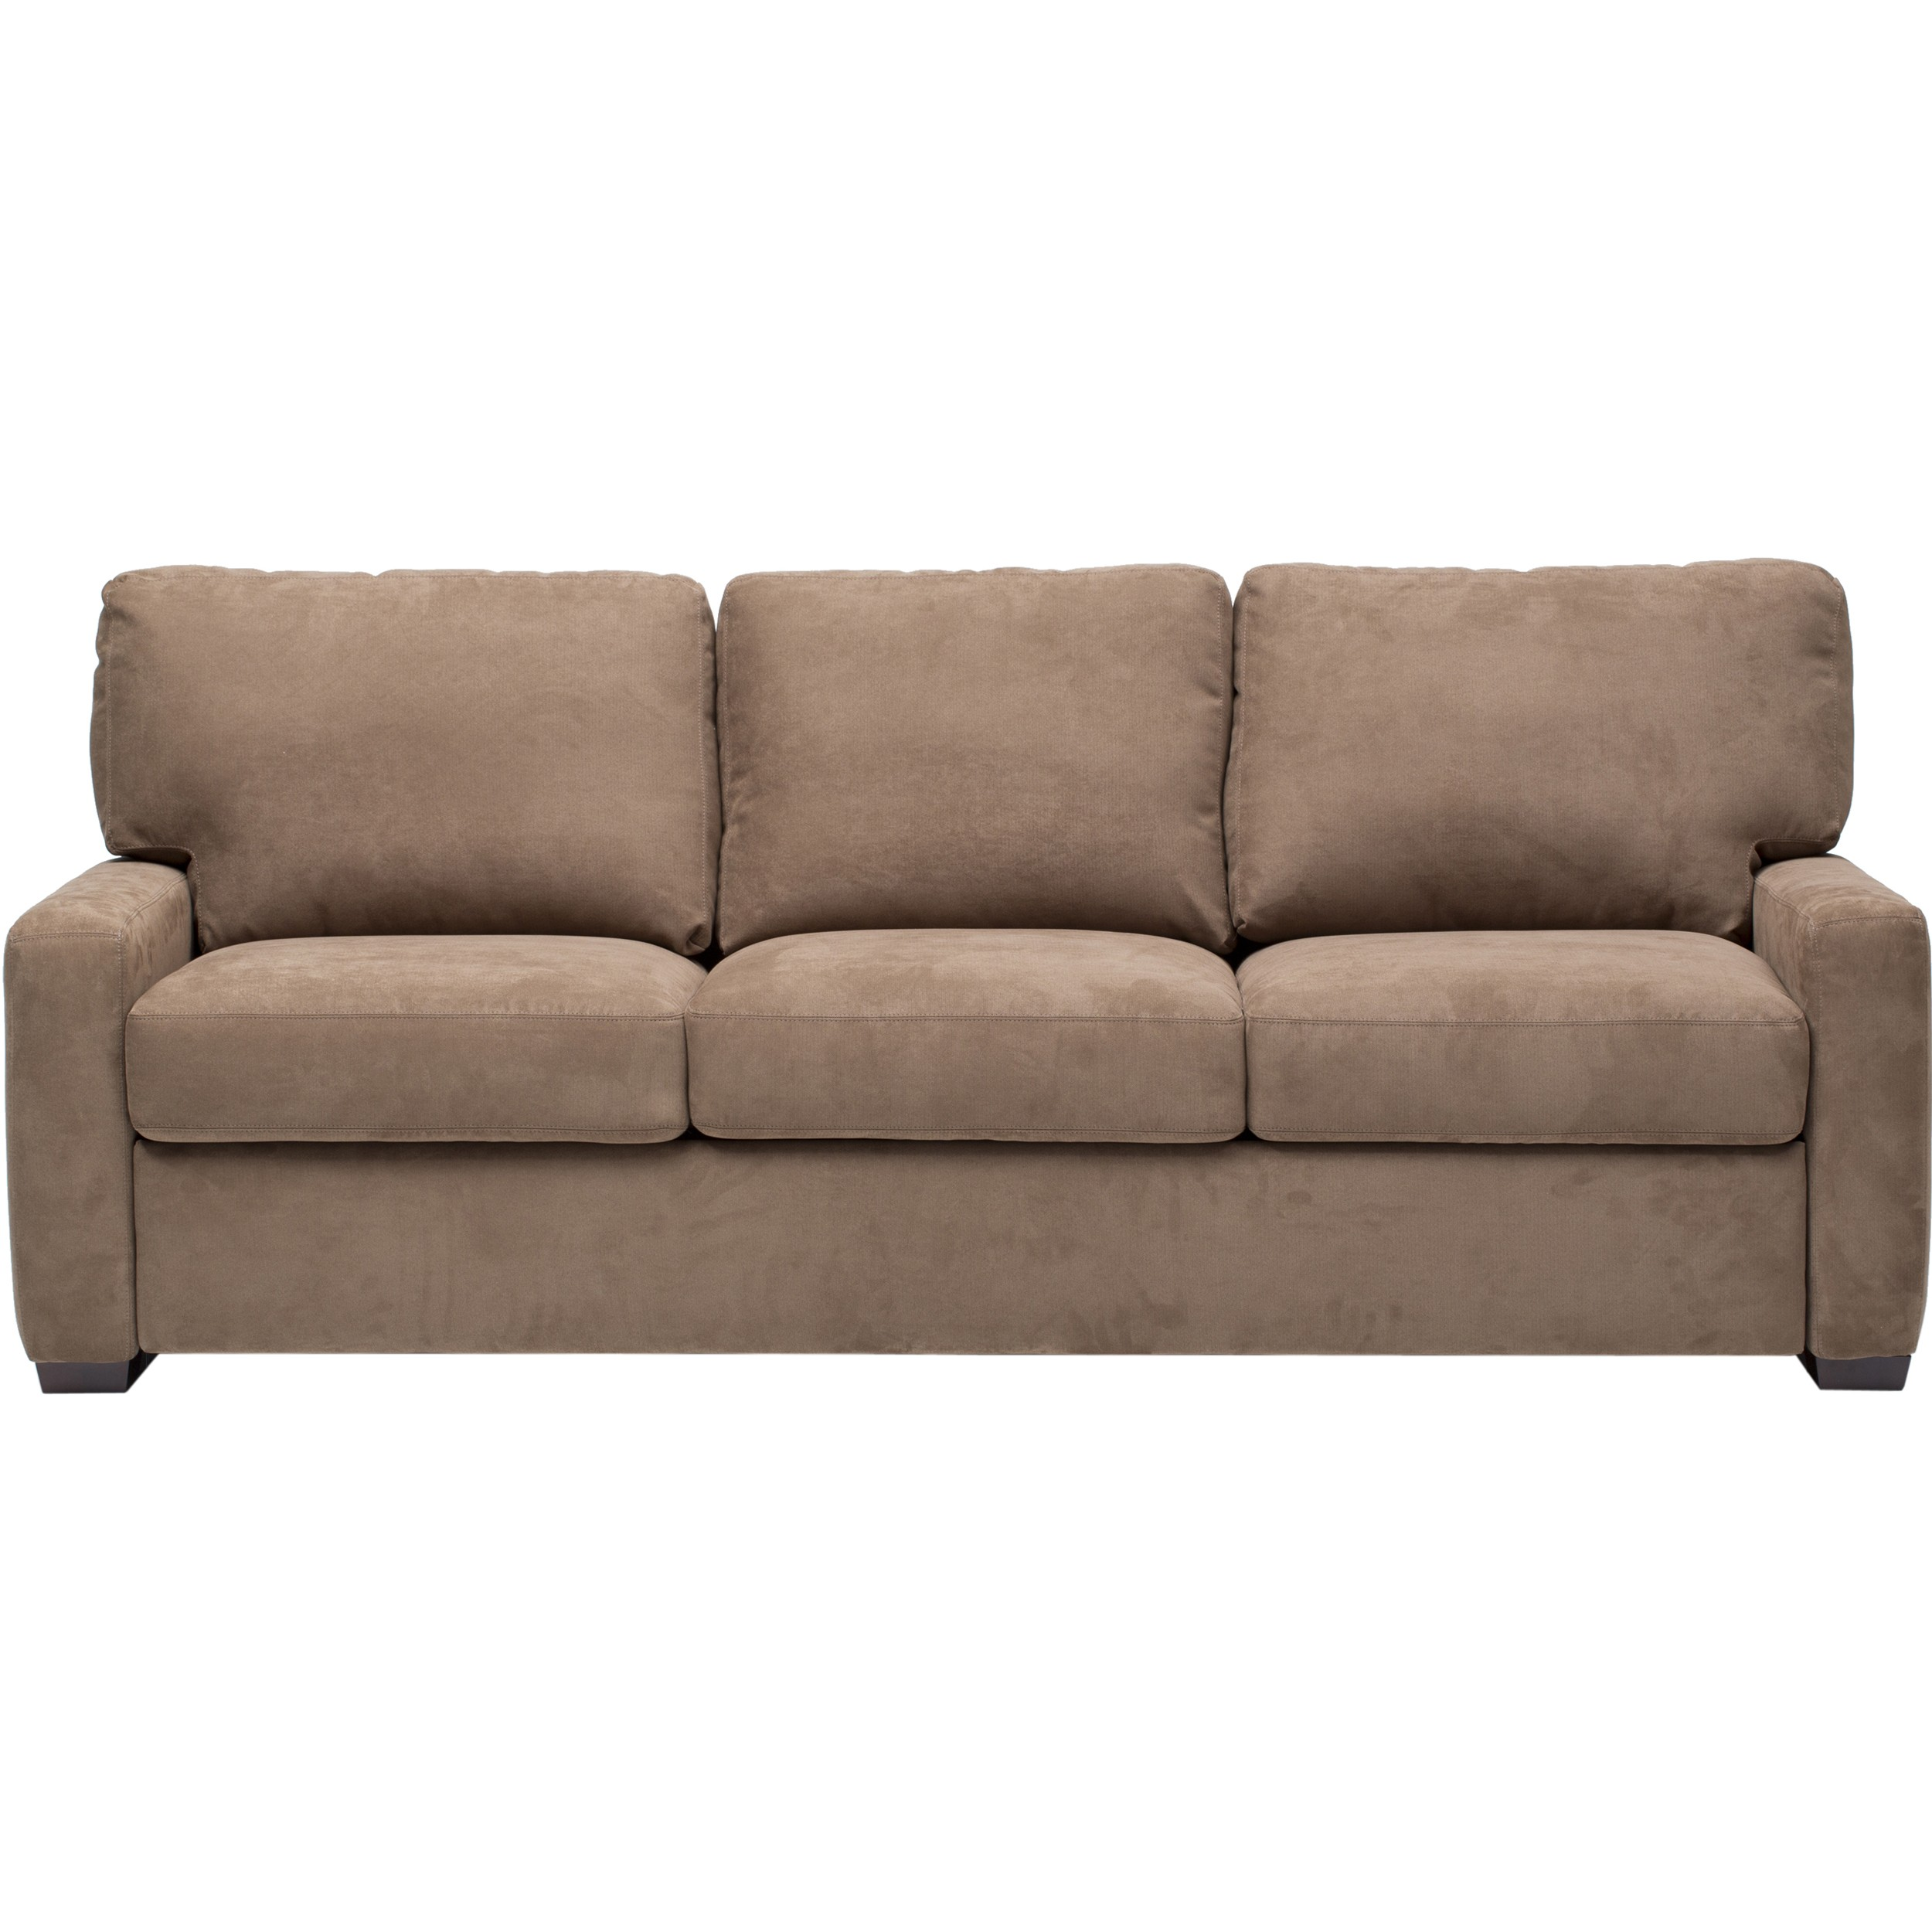 Tempurpedic Sleeper Sofa